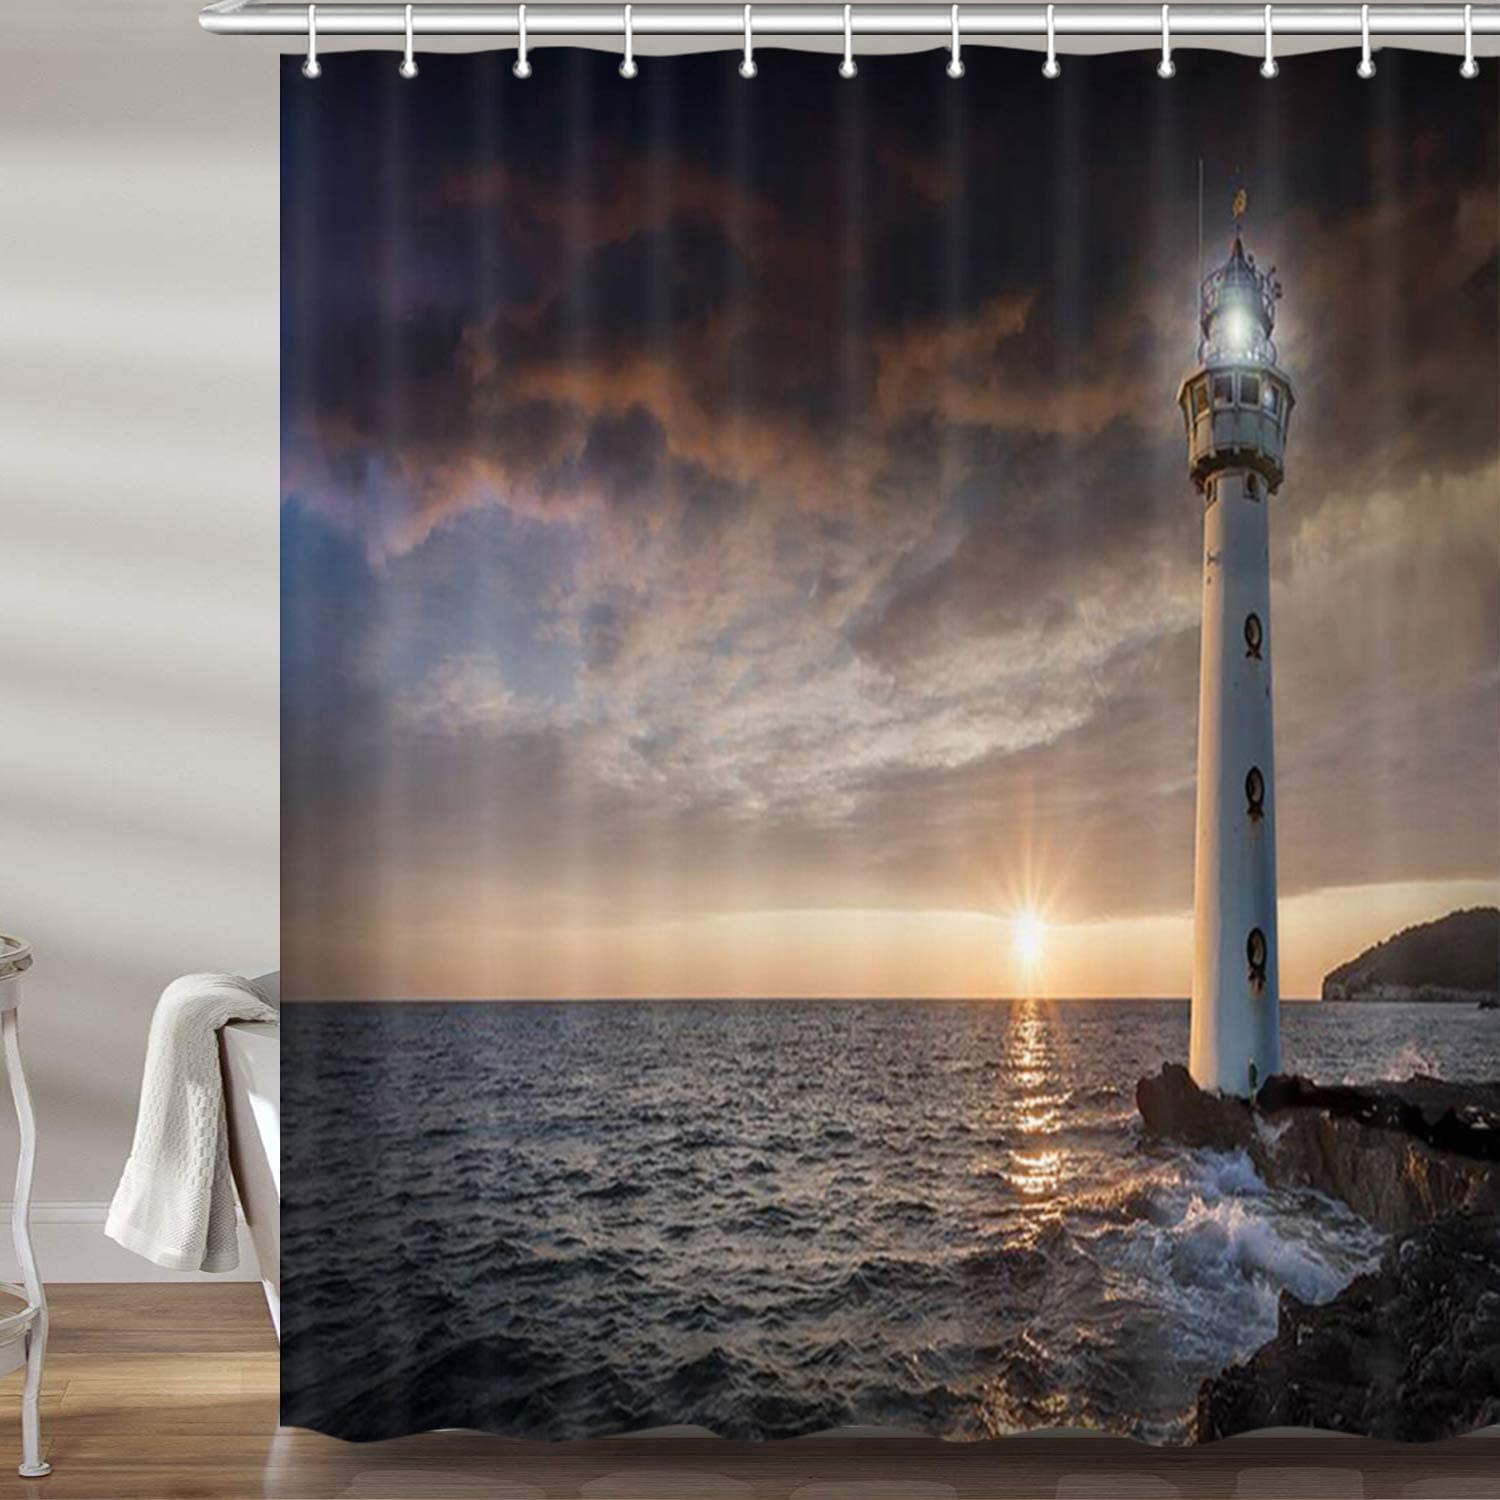 Lighthouse Light With Ocean Bathroom Fabric Shower Curtain With Hooks 71inch